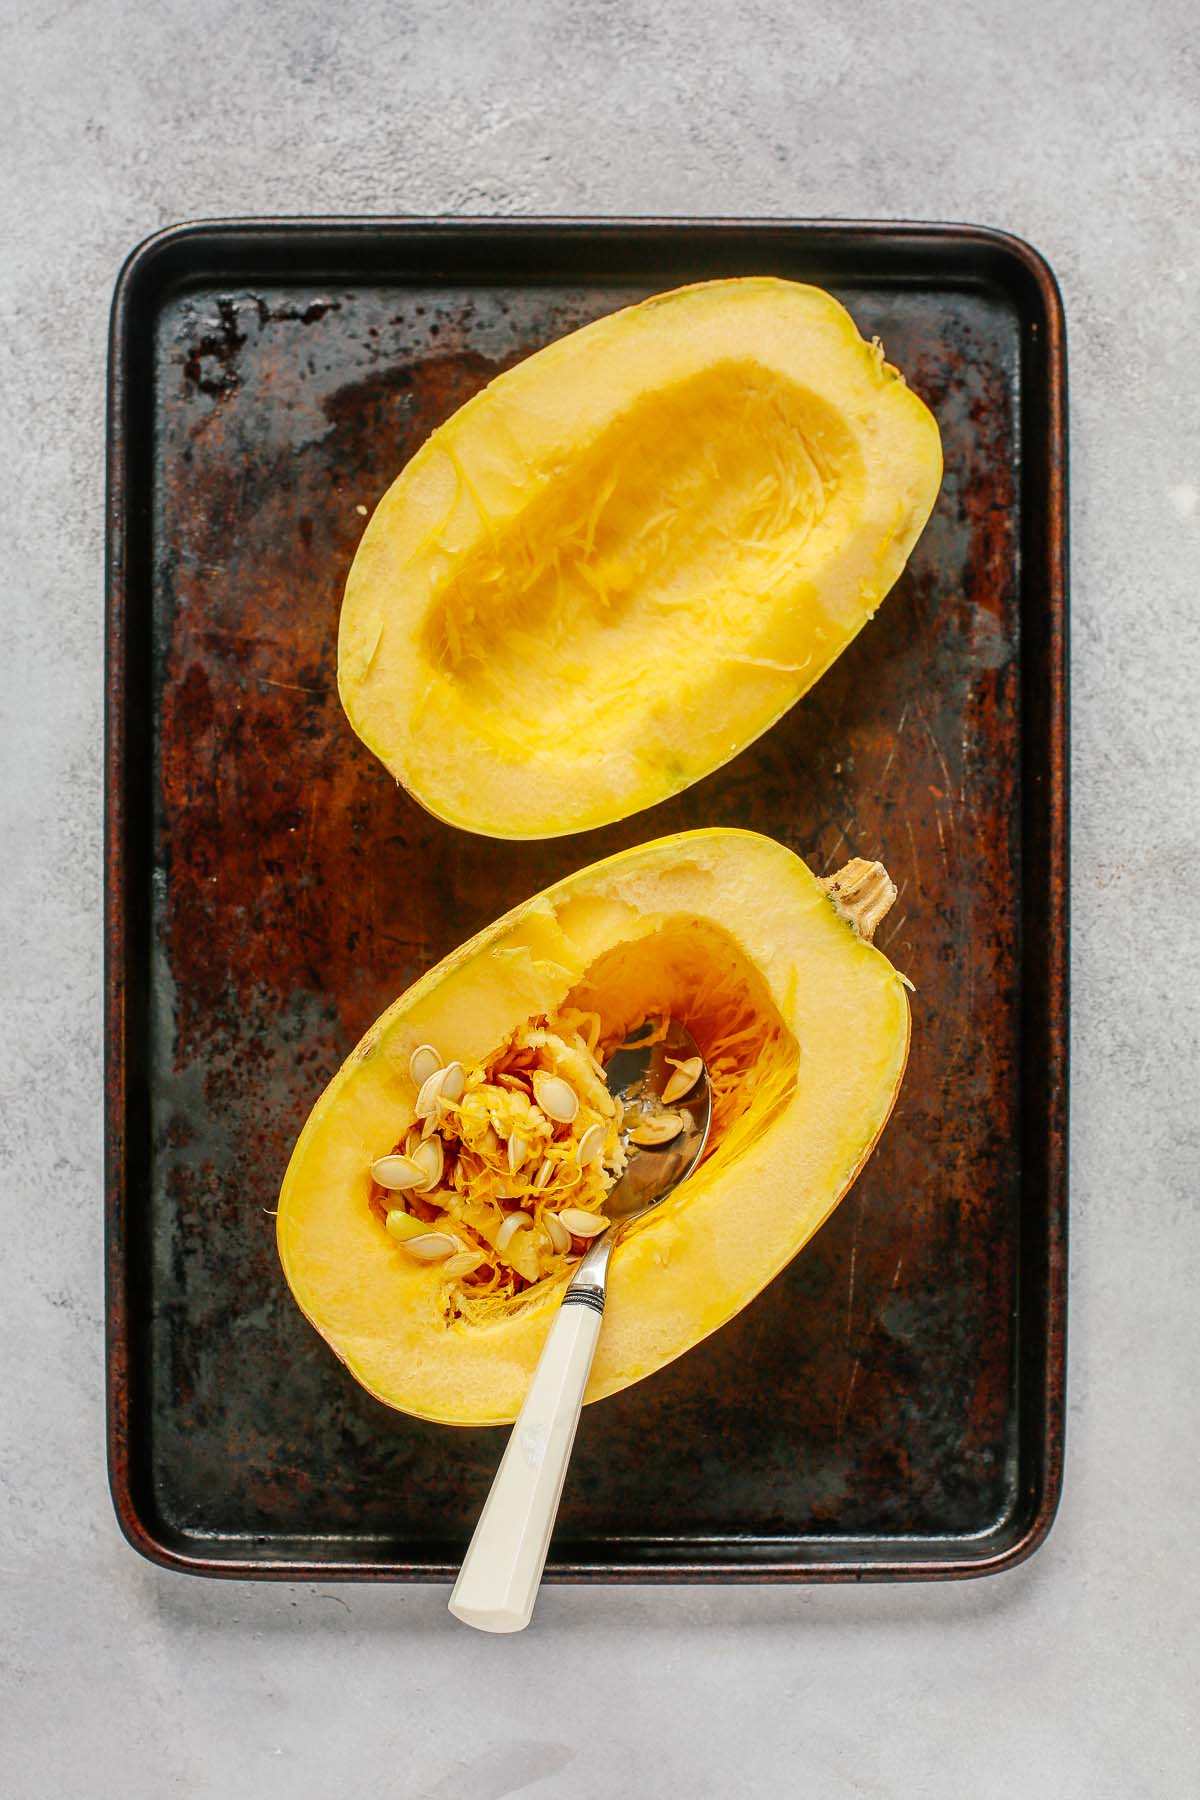 spaghetti squash without the seeds